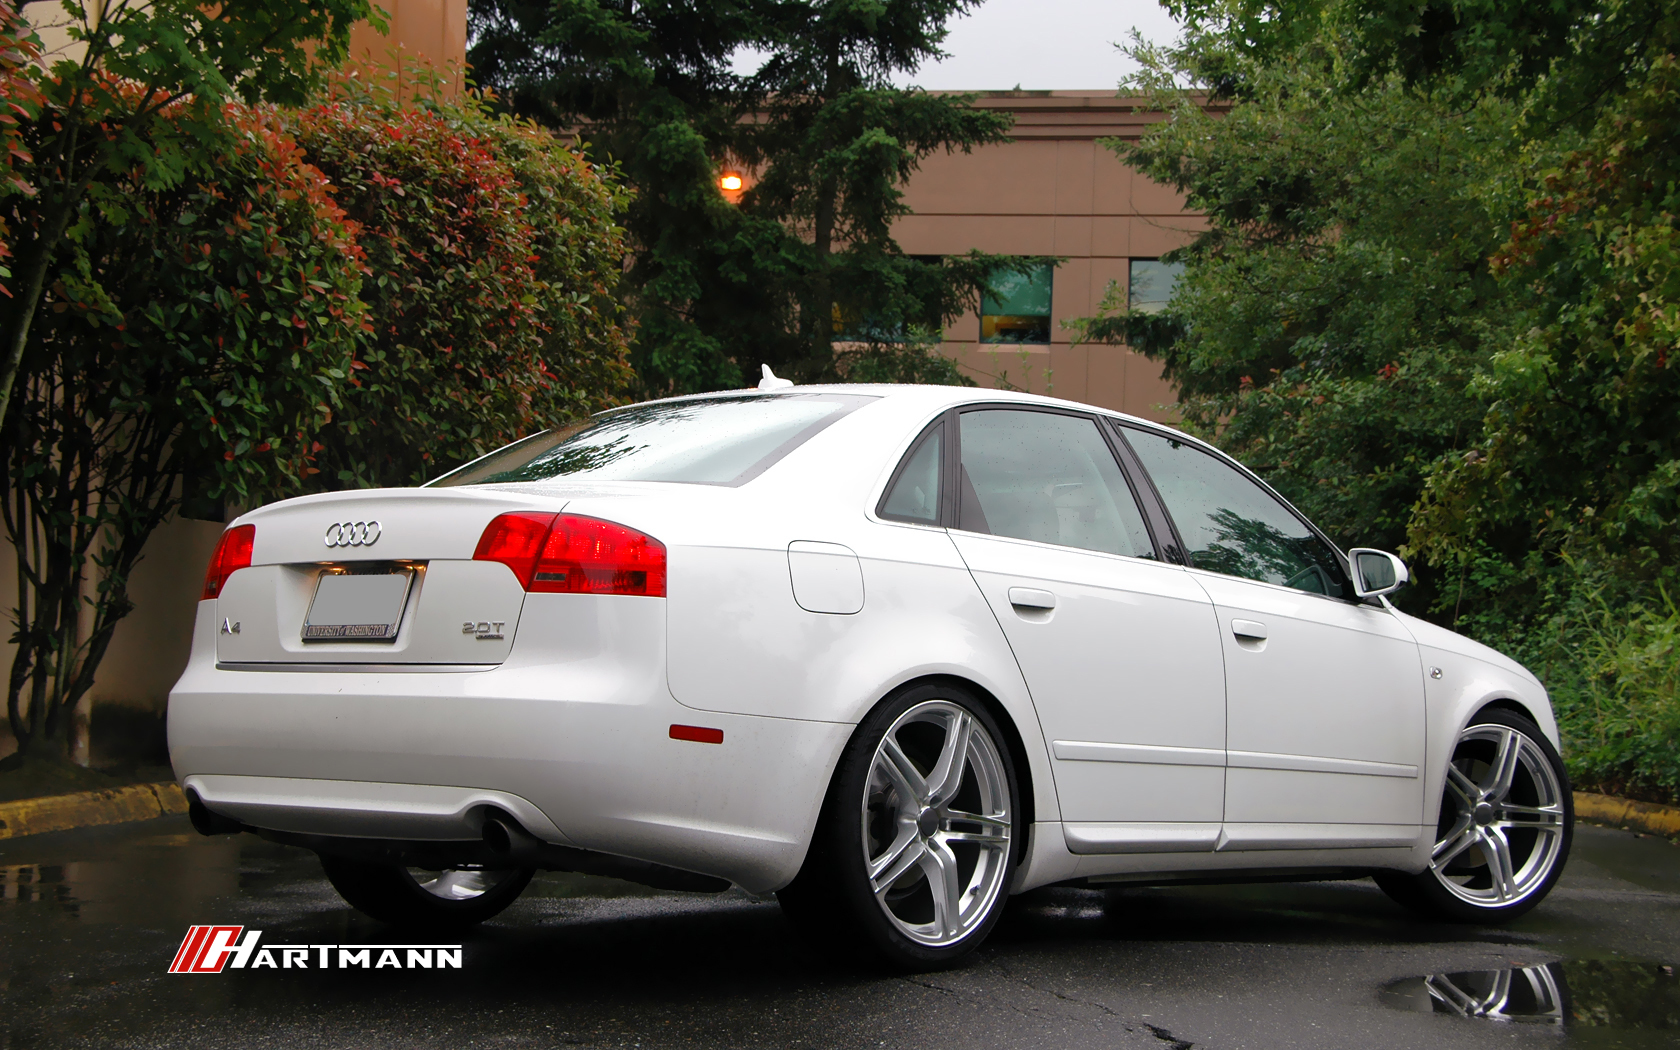 Hartmann Hr8 Gs M Wheels For Audi Fitment Hartmann Wheels